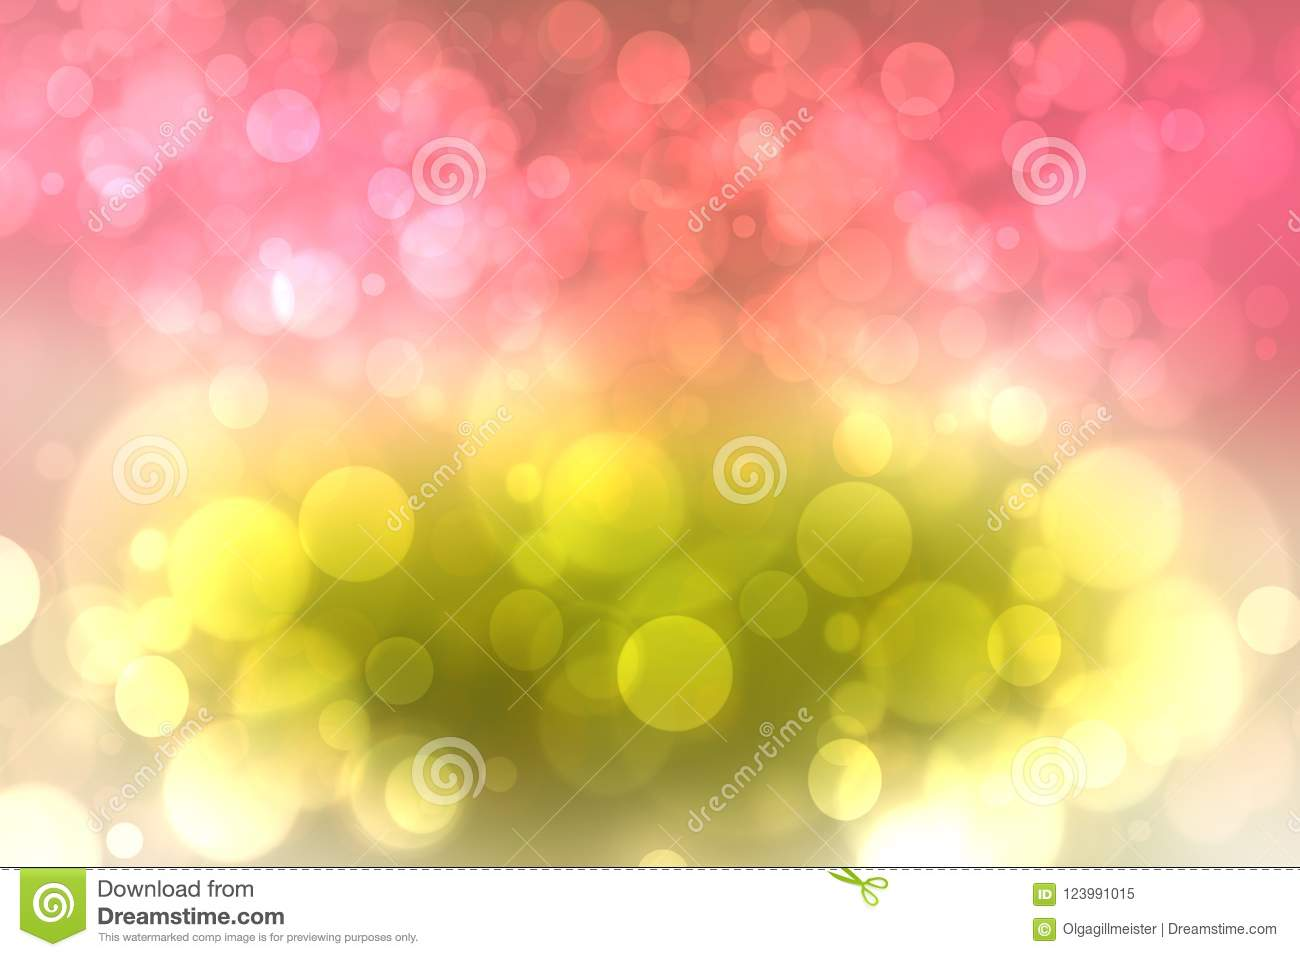 Red Gold Bright Abstract Bokeh  Template For Your Product Display